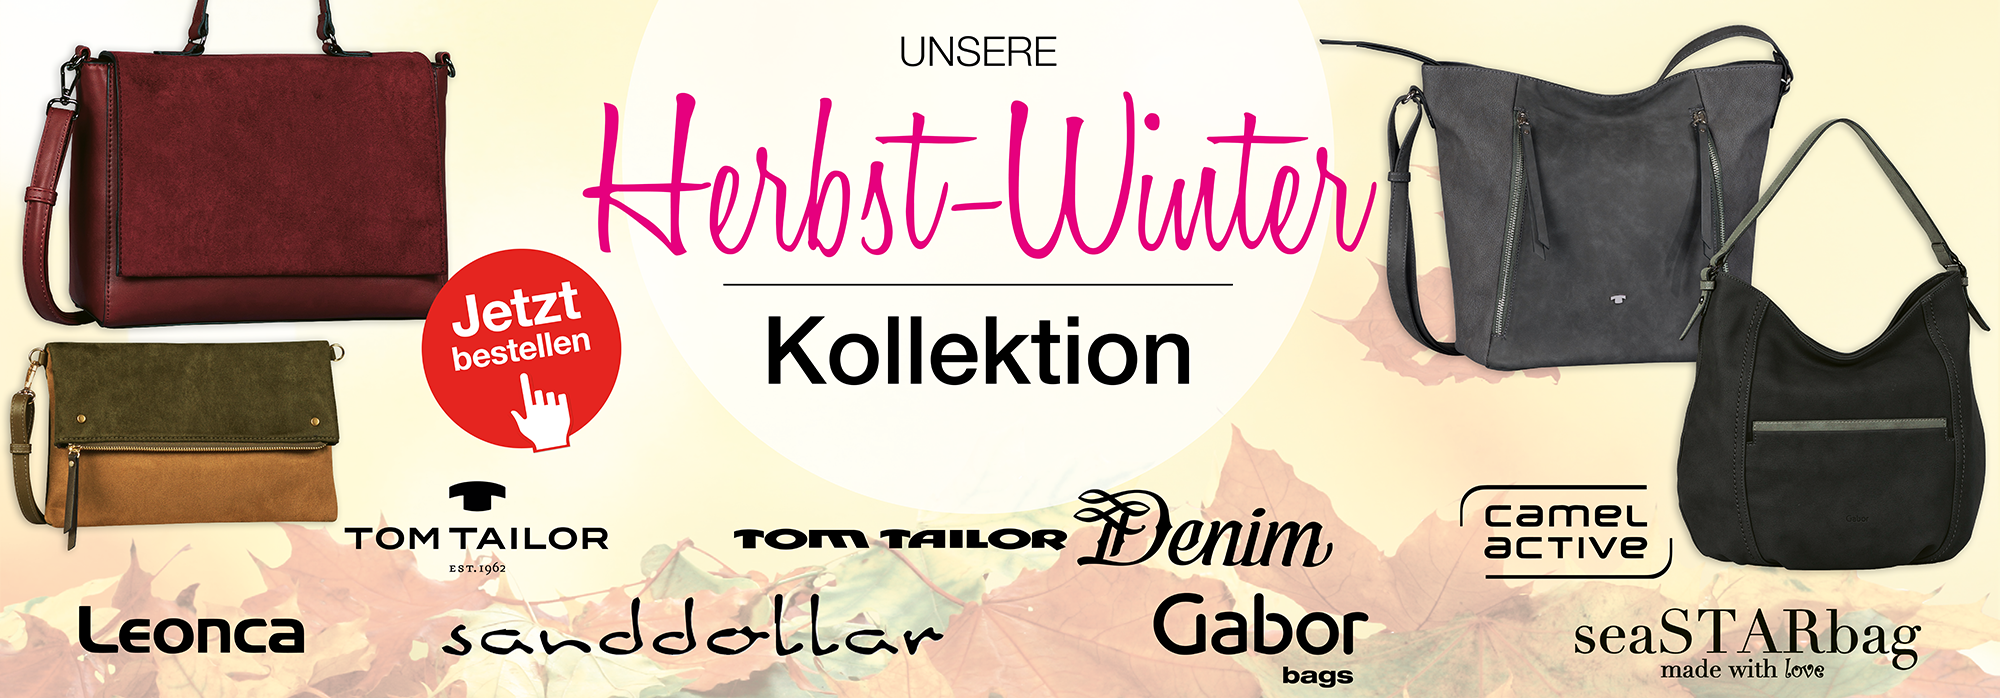 Herbst-Winter Kollektion